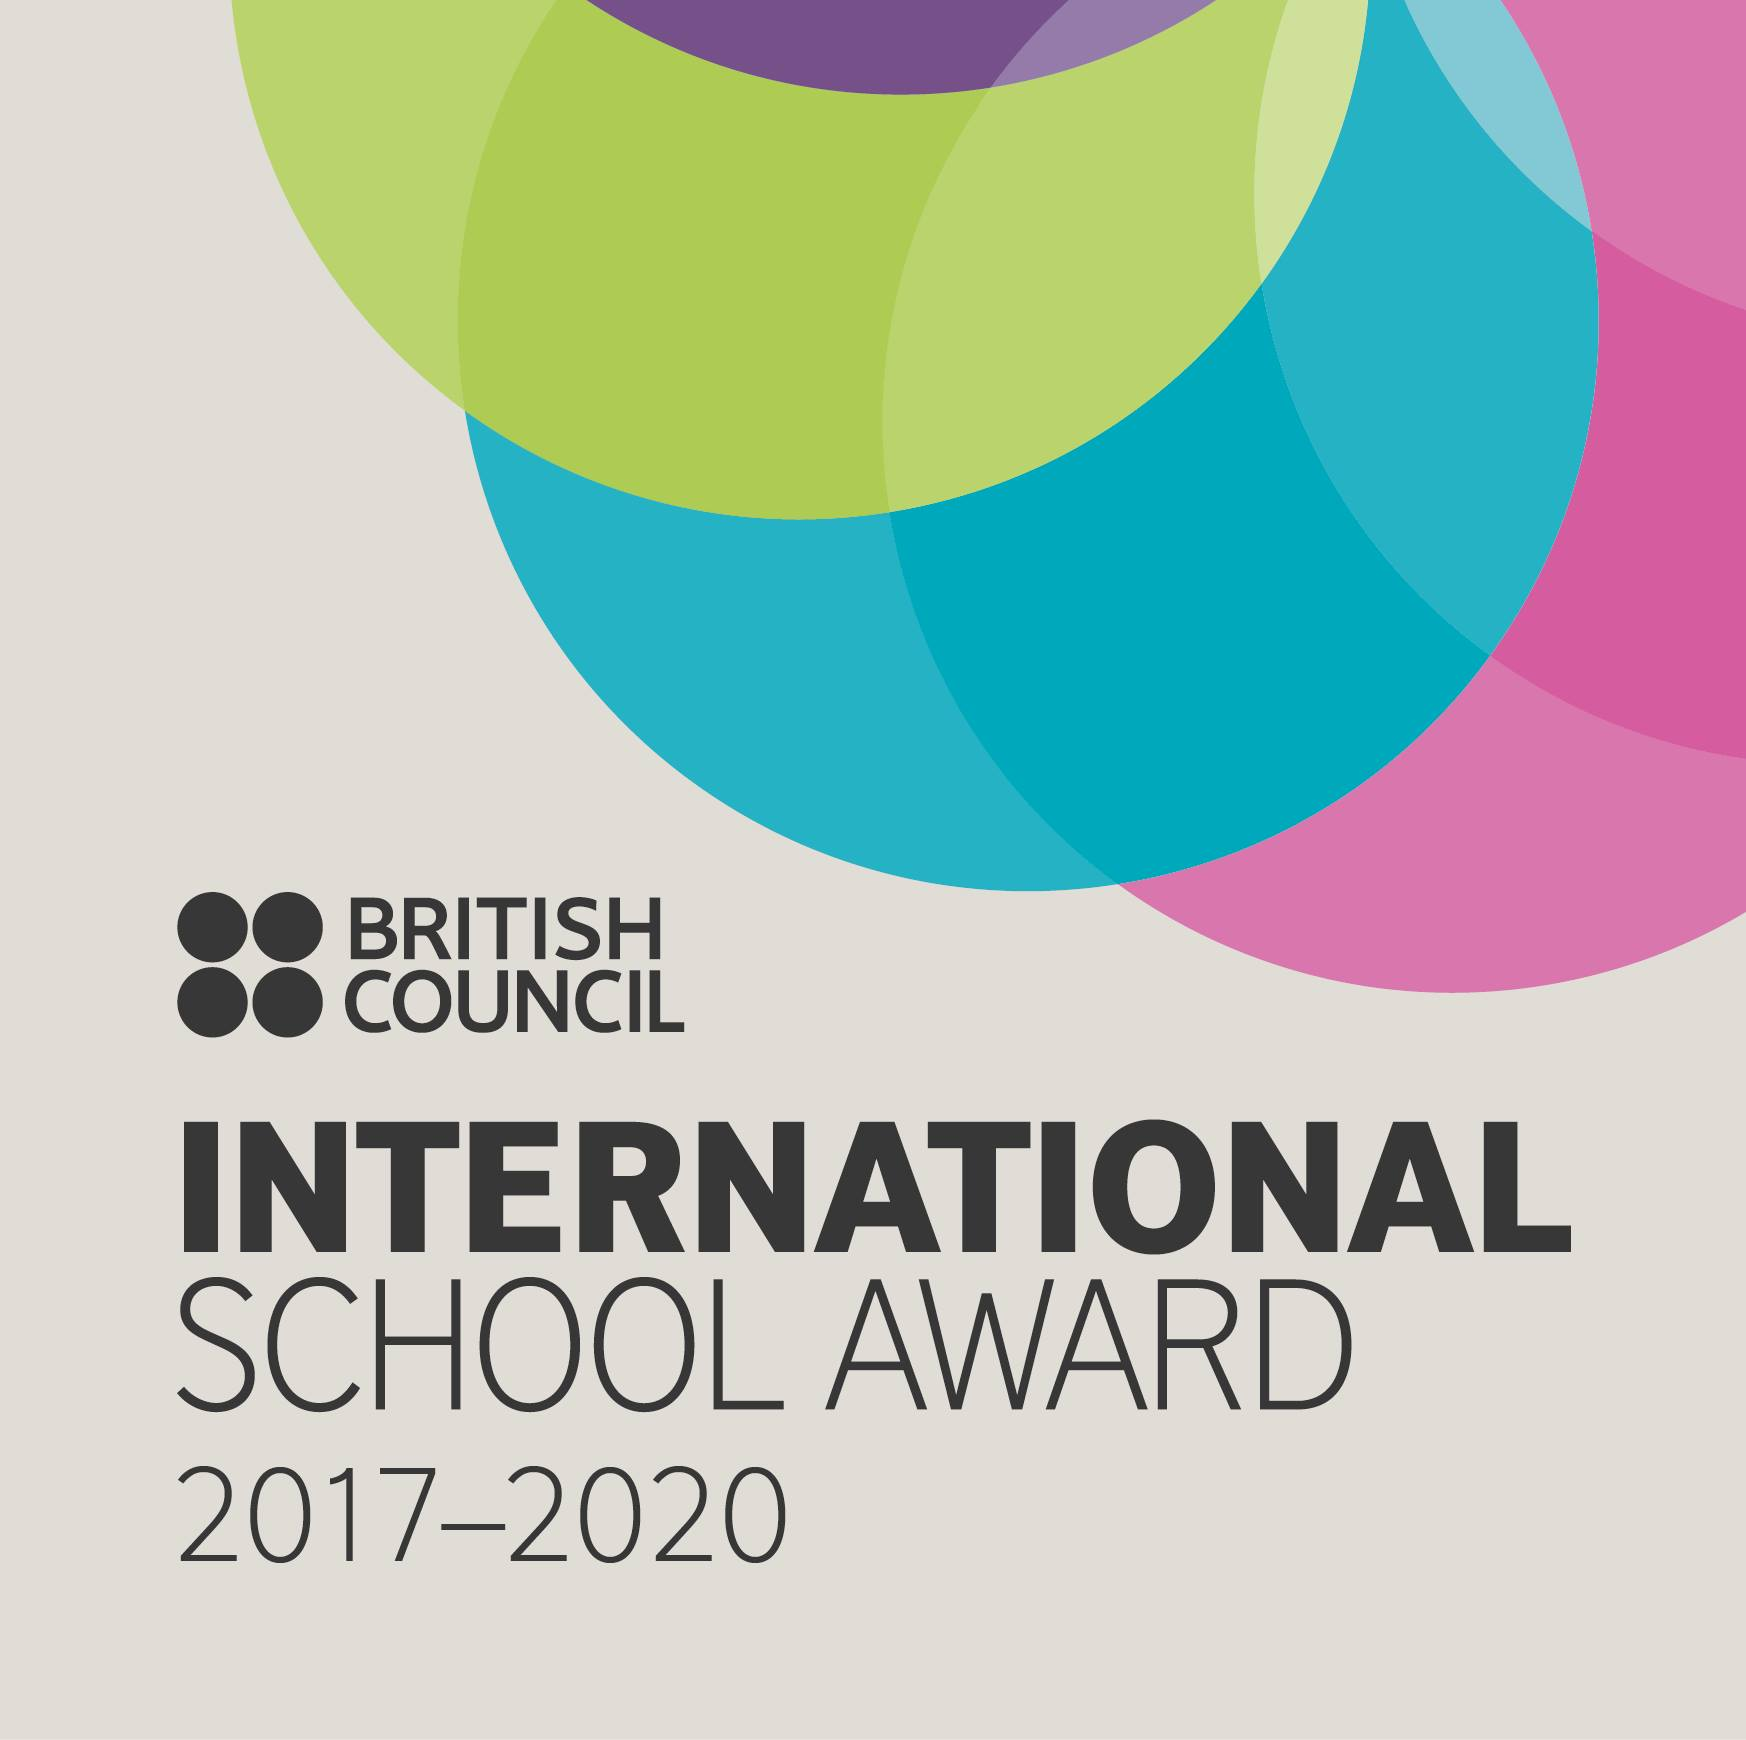 BRITISH COUNCIL INTERNATIONAL SCHOOL AWARD 2017-2020